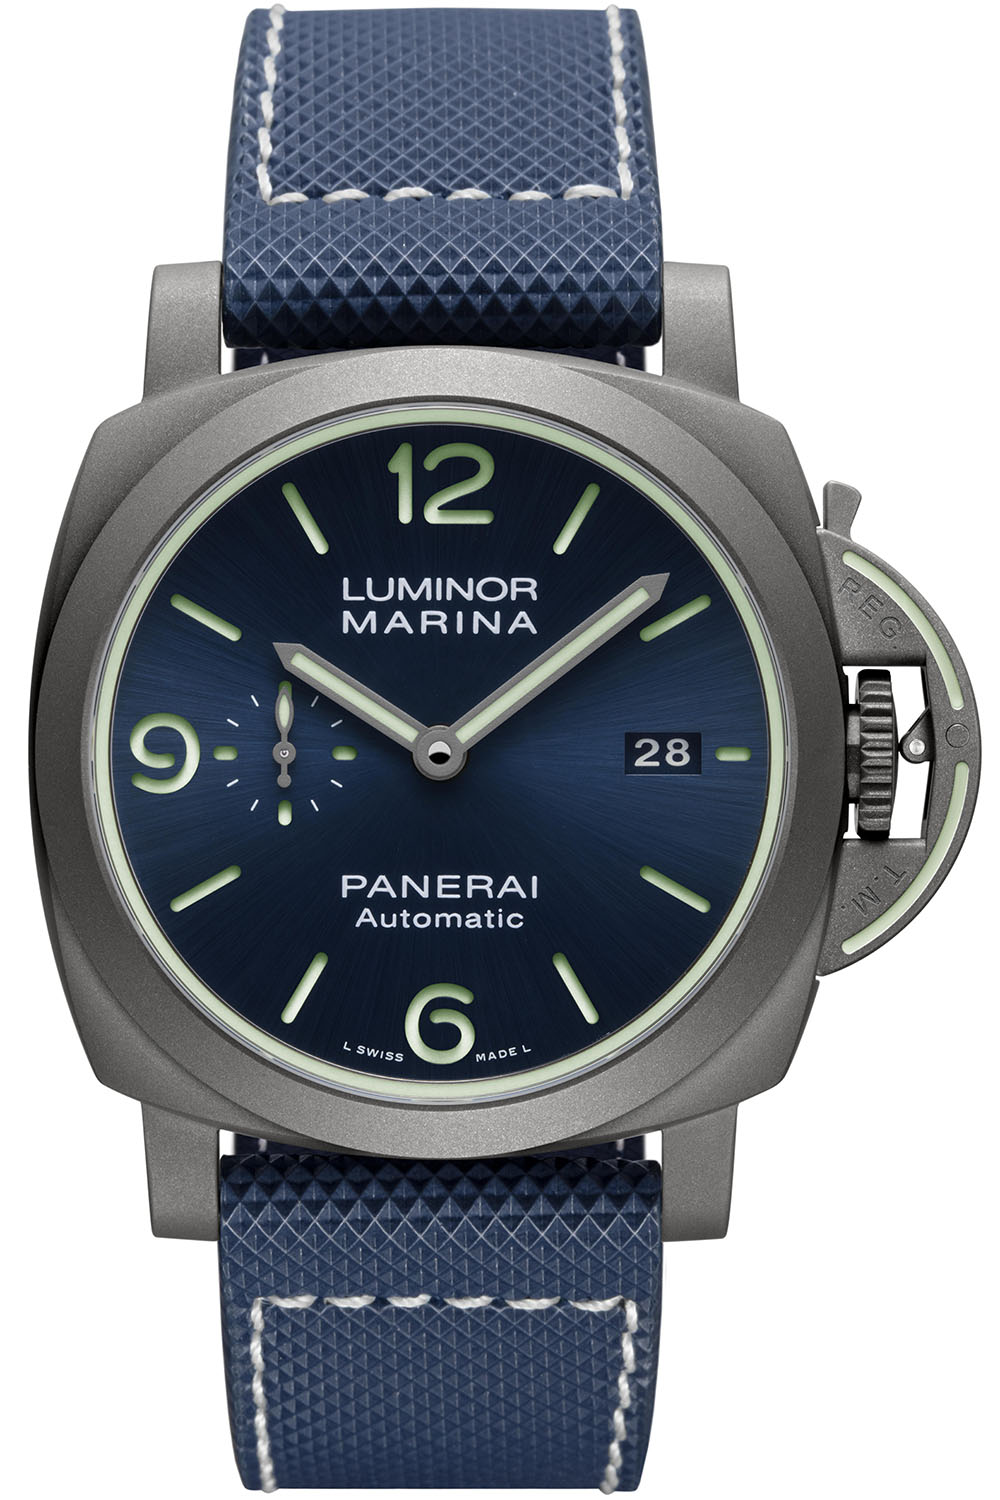 2020 Panerai Luminor Marina PAM1117 - 1